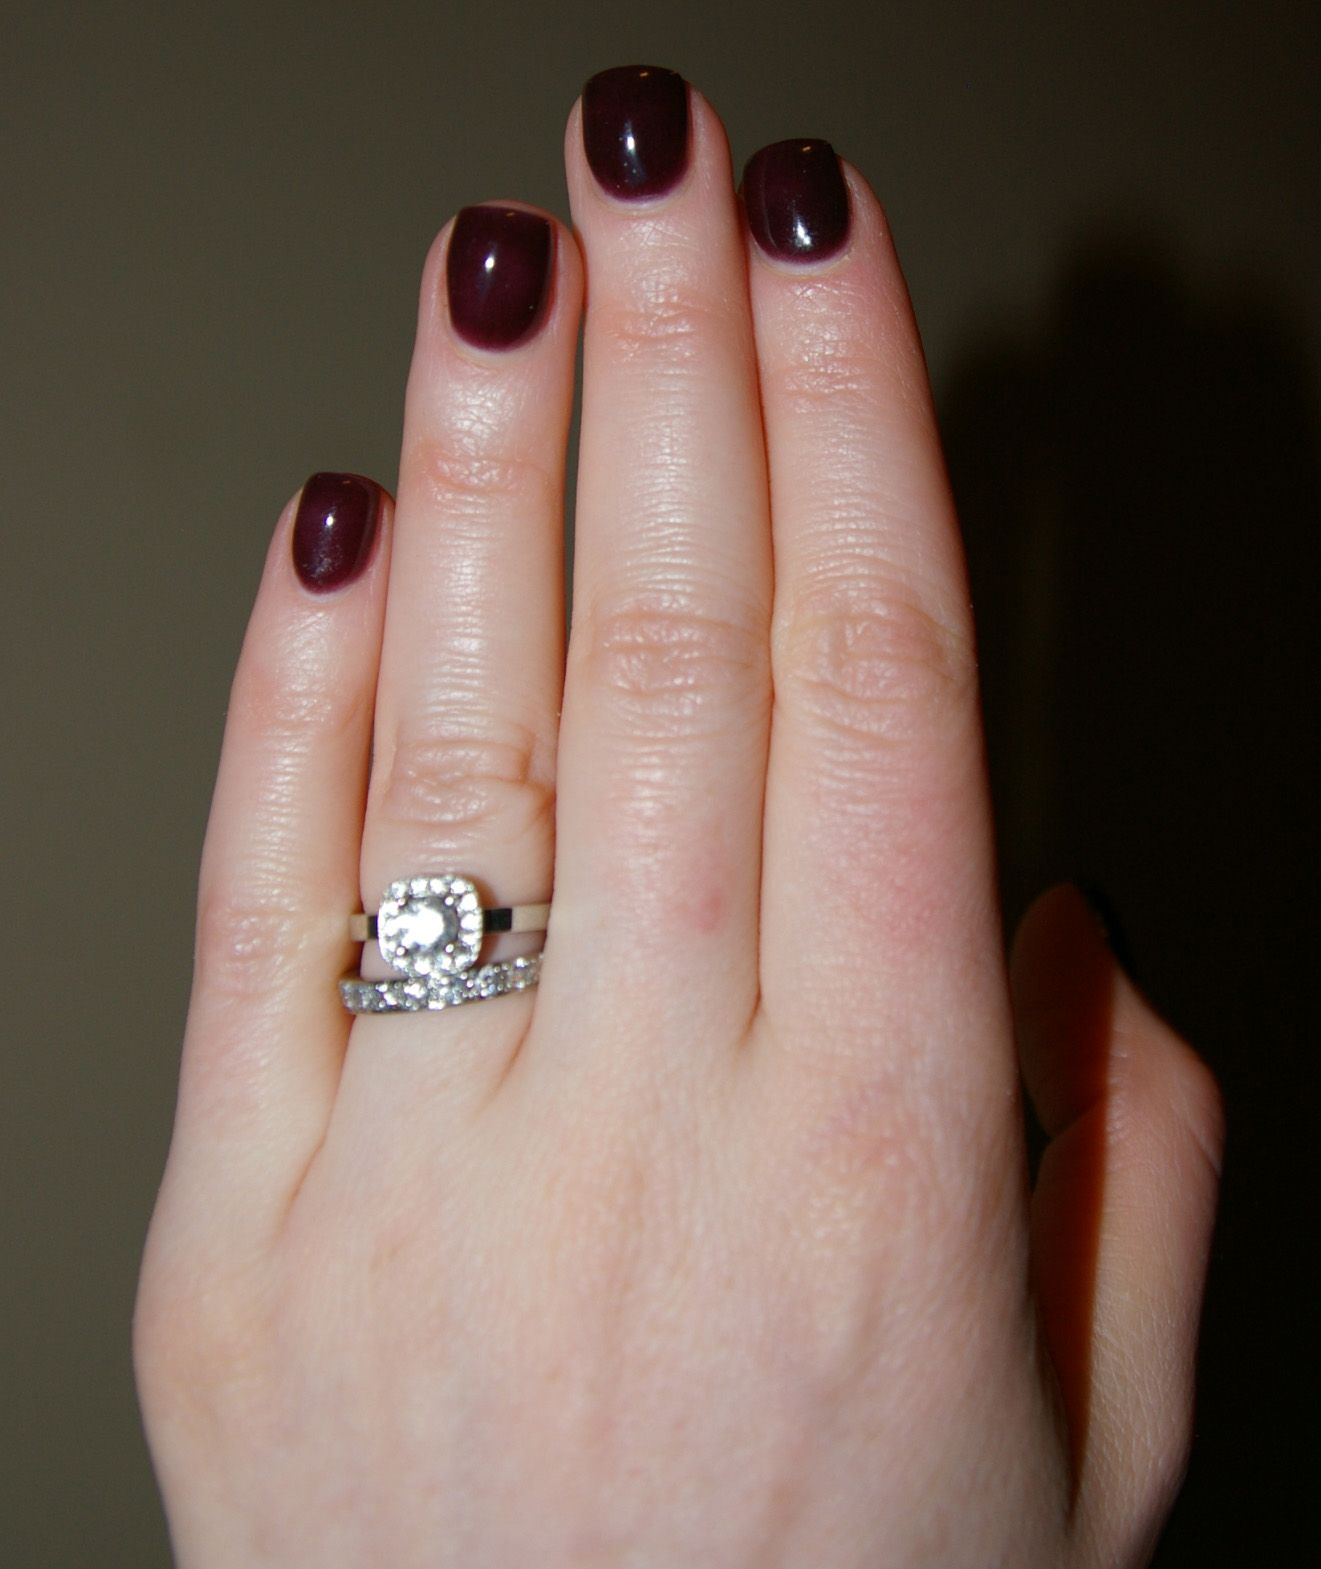 I'm a firm believer in short nails. Such a perfect shape ...